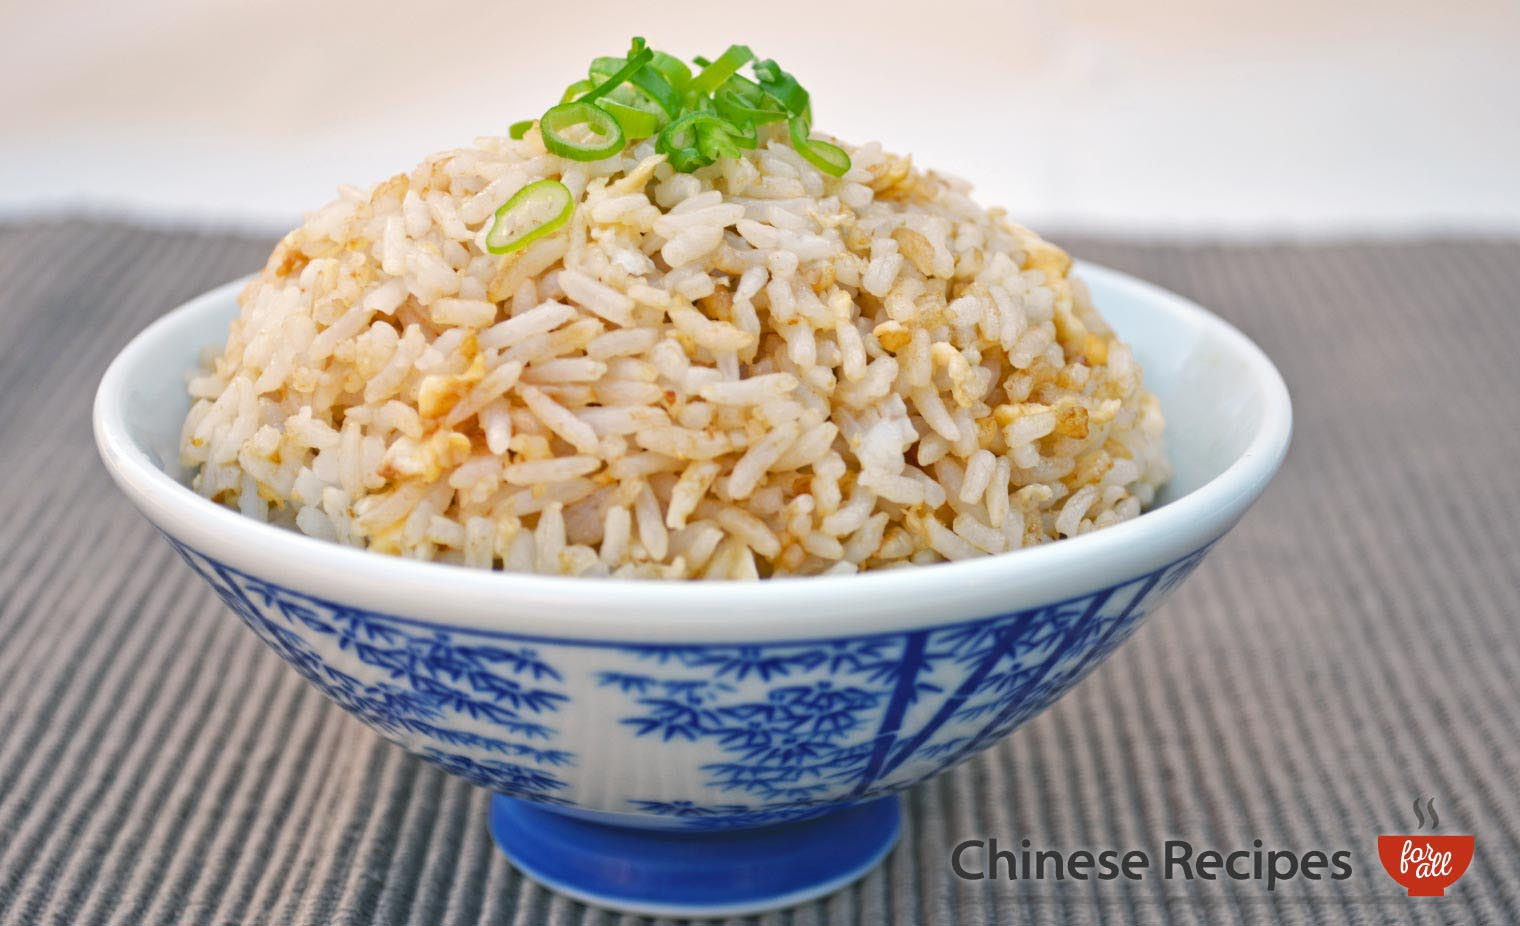 Egg Fried Rice | Recipes | Chinese Recipes for All.com